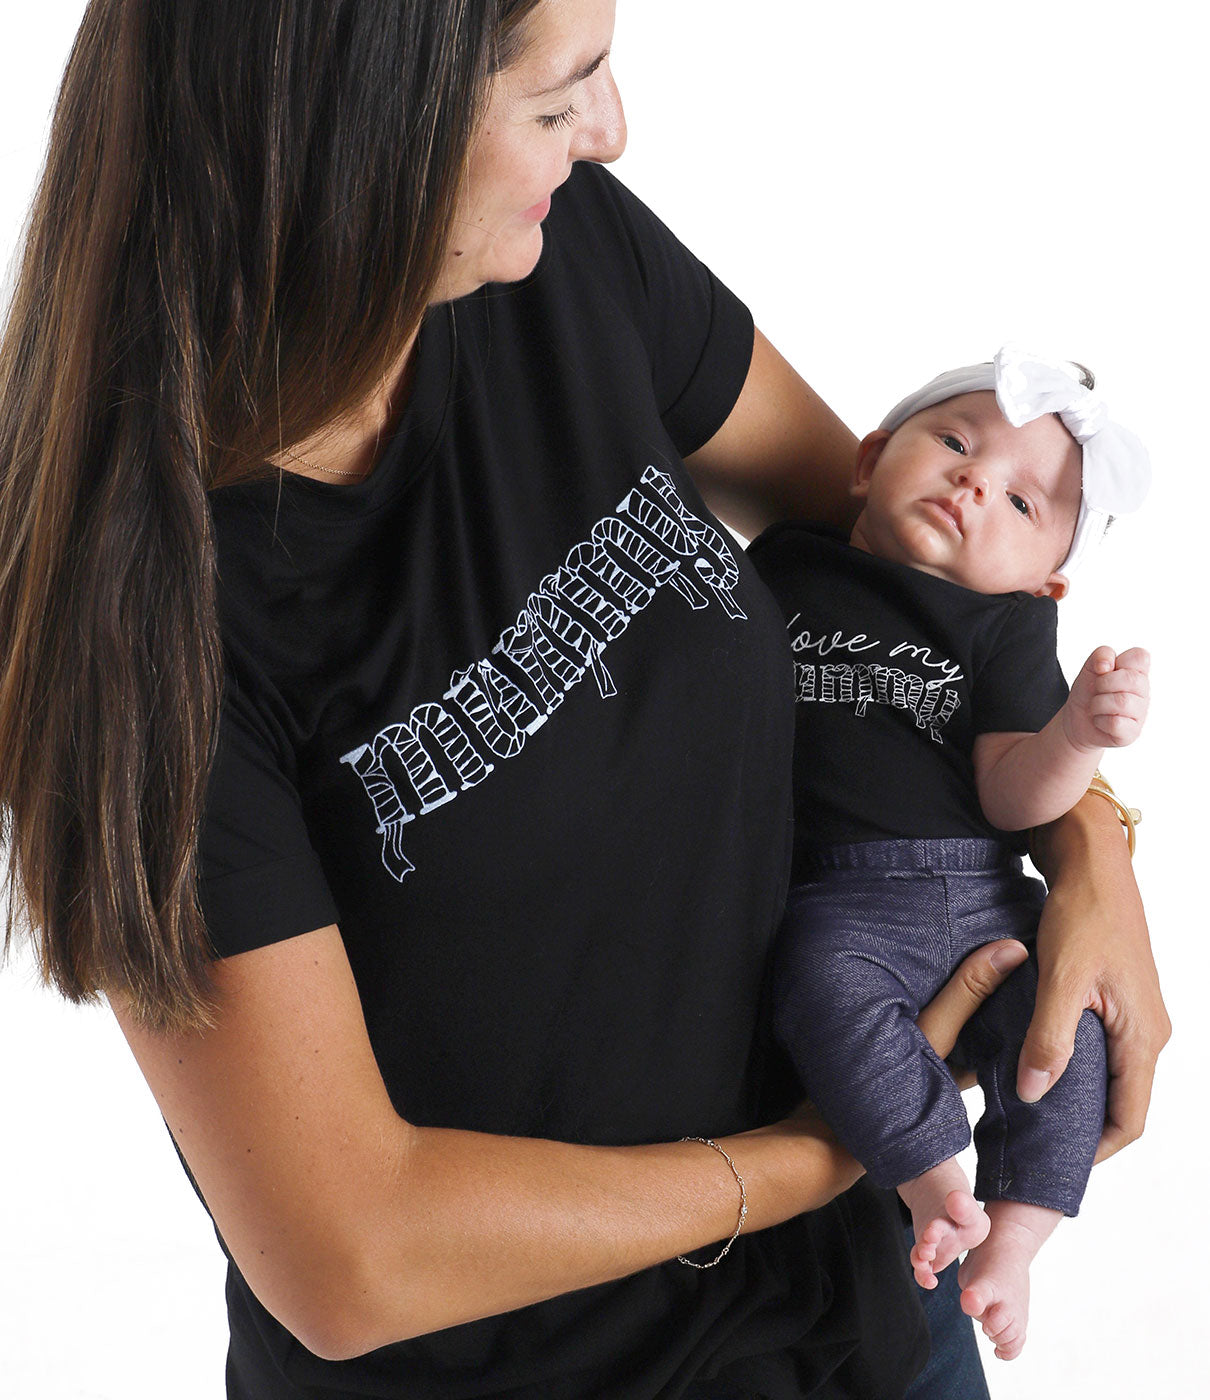 Make It A PairCheck out the BABE Glow in the Dark Onesie for an adorable mommy-and-me look.